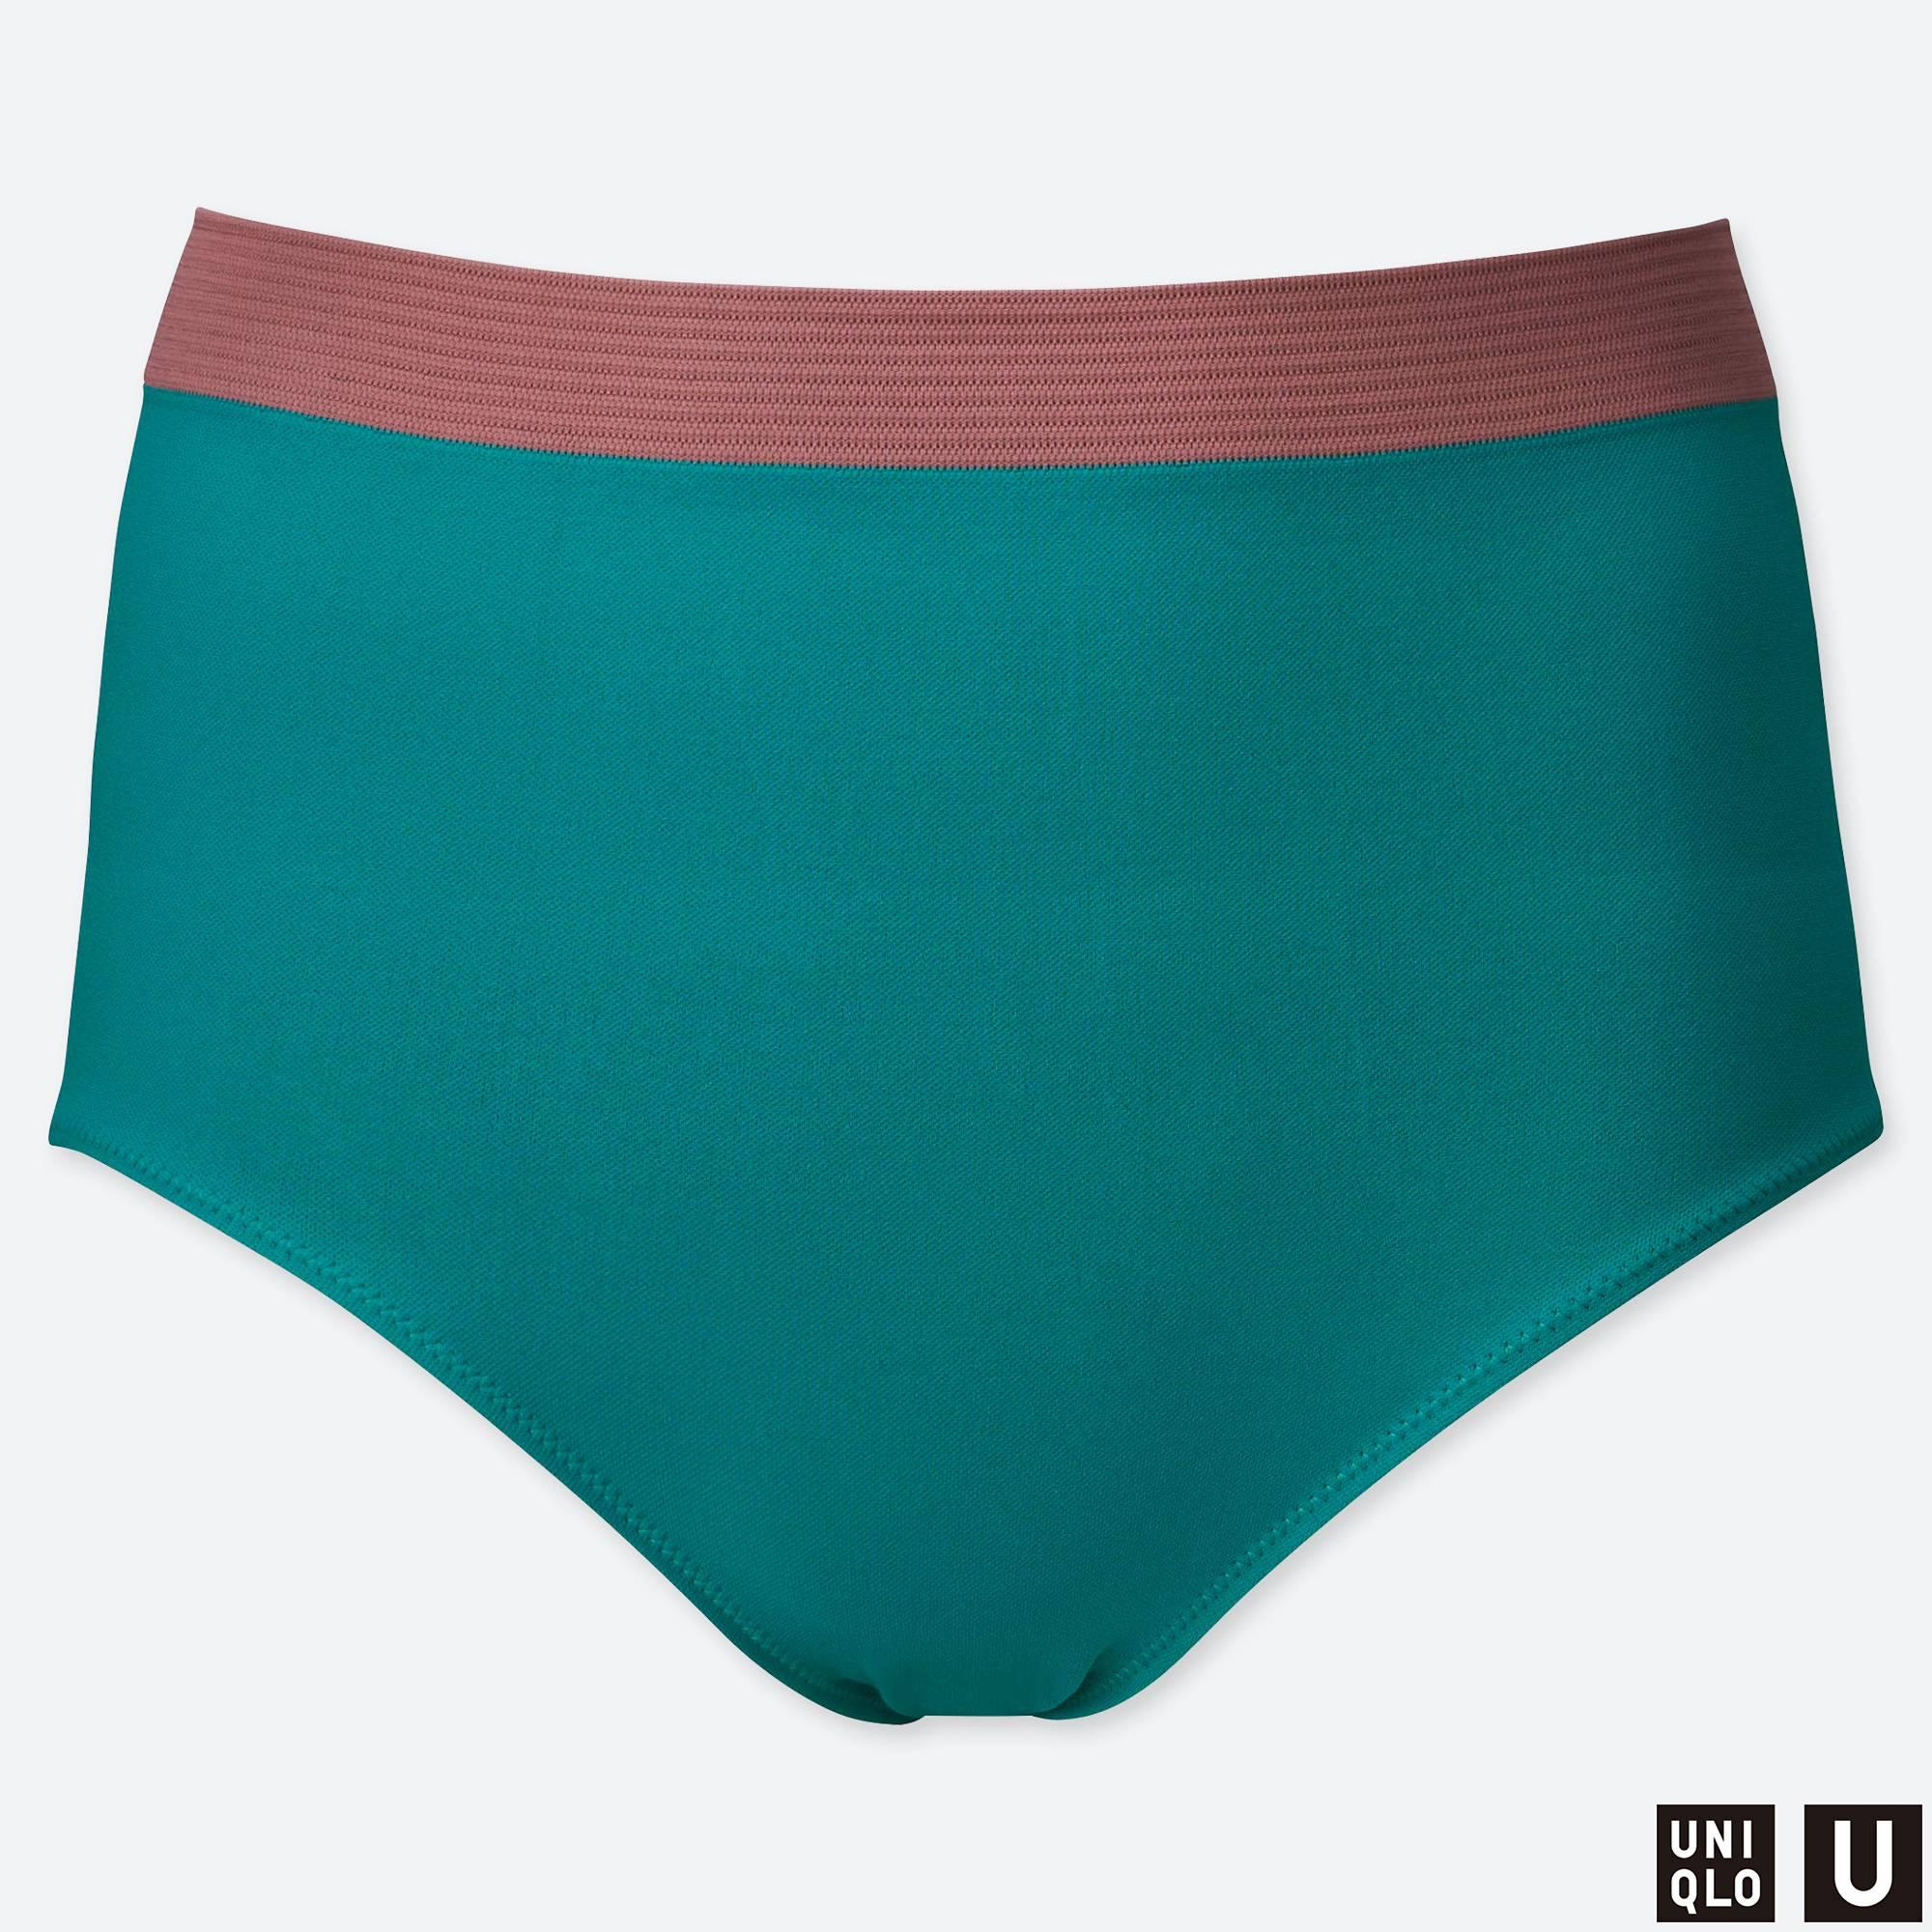 b0b81d6fa7 Lyst - Uniqlo Women U Seamless High-rise Bikini Swim Shorts in Green